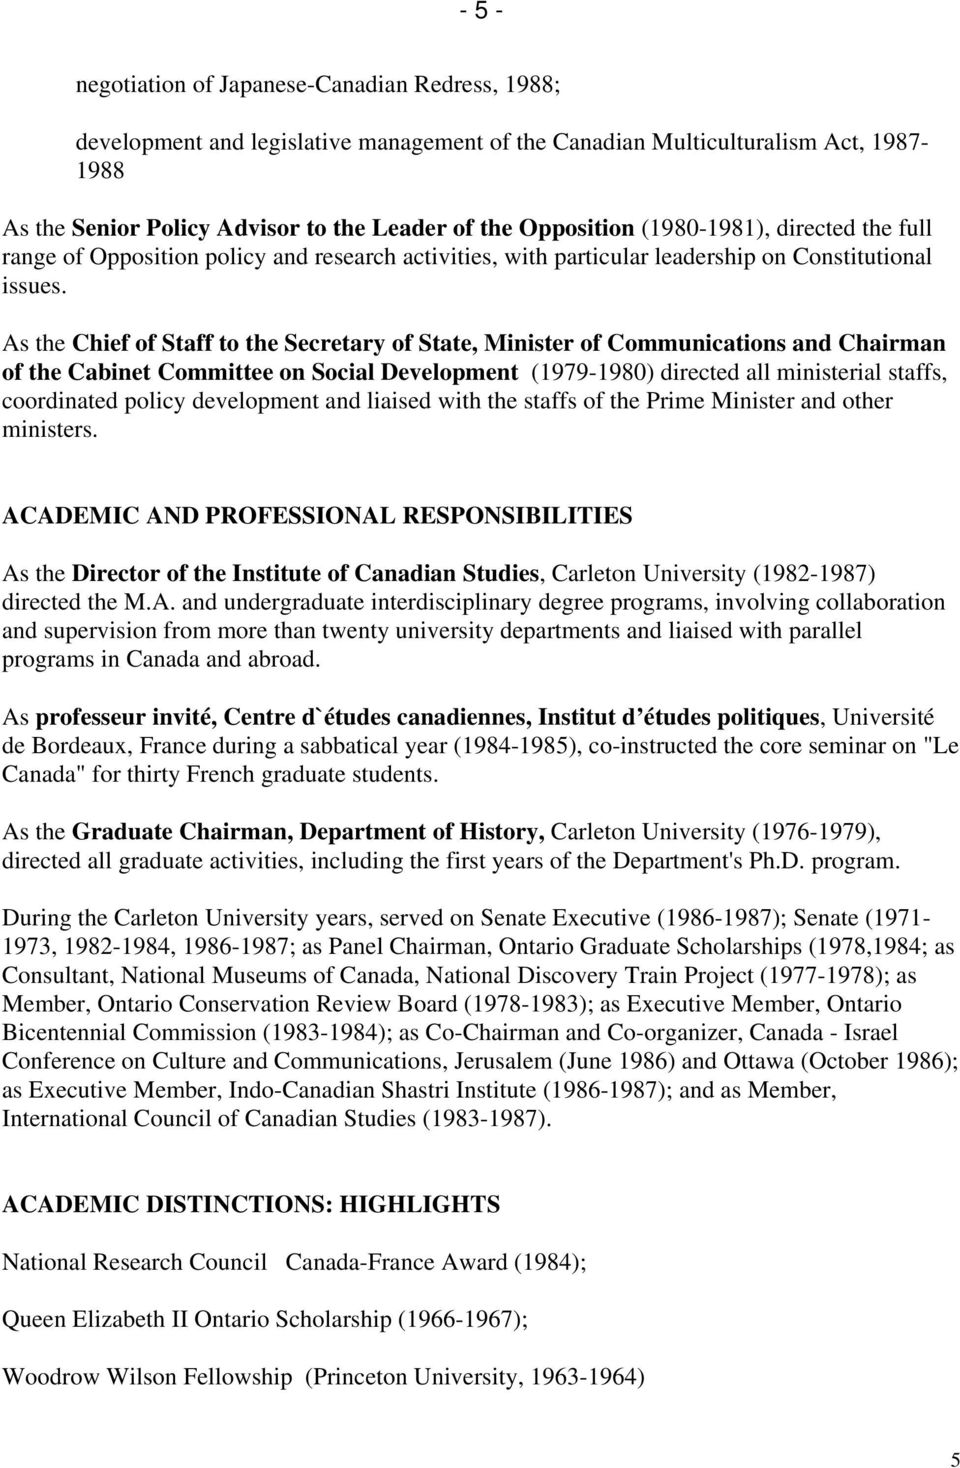 As the Chief of Staff to the Secretary of State, Minister of Communications and Chairman of the Cabinet Committee on Social Development (1979-1980) directed all ministerial staffs, coordinated policy